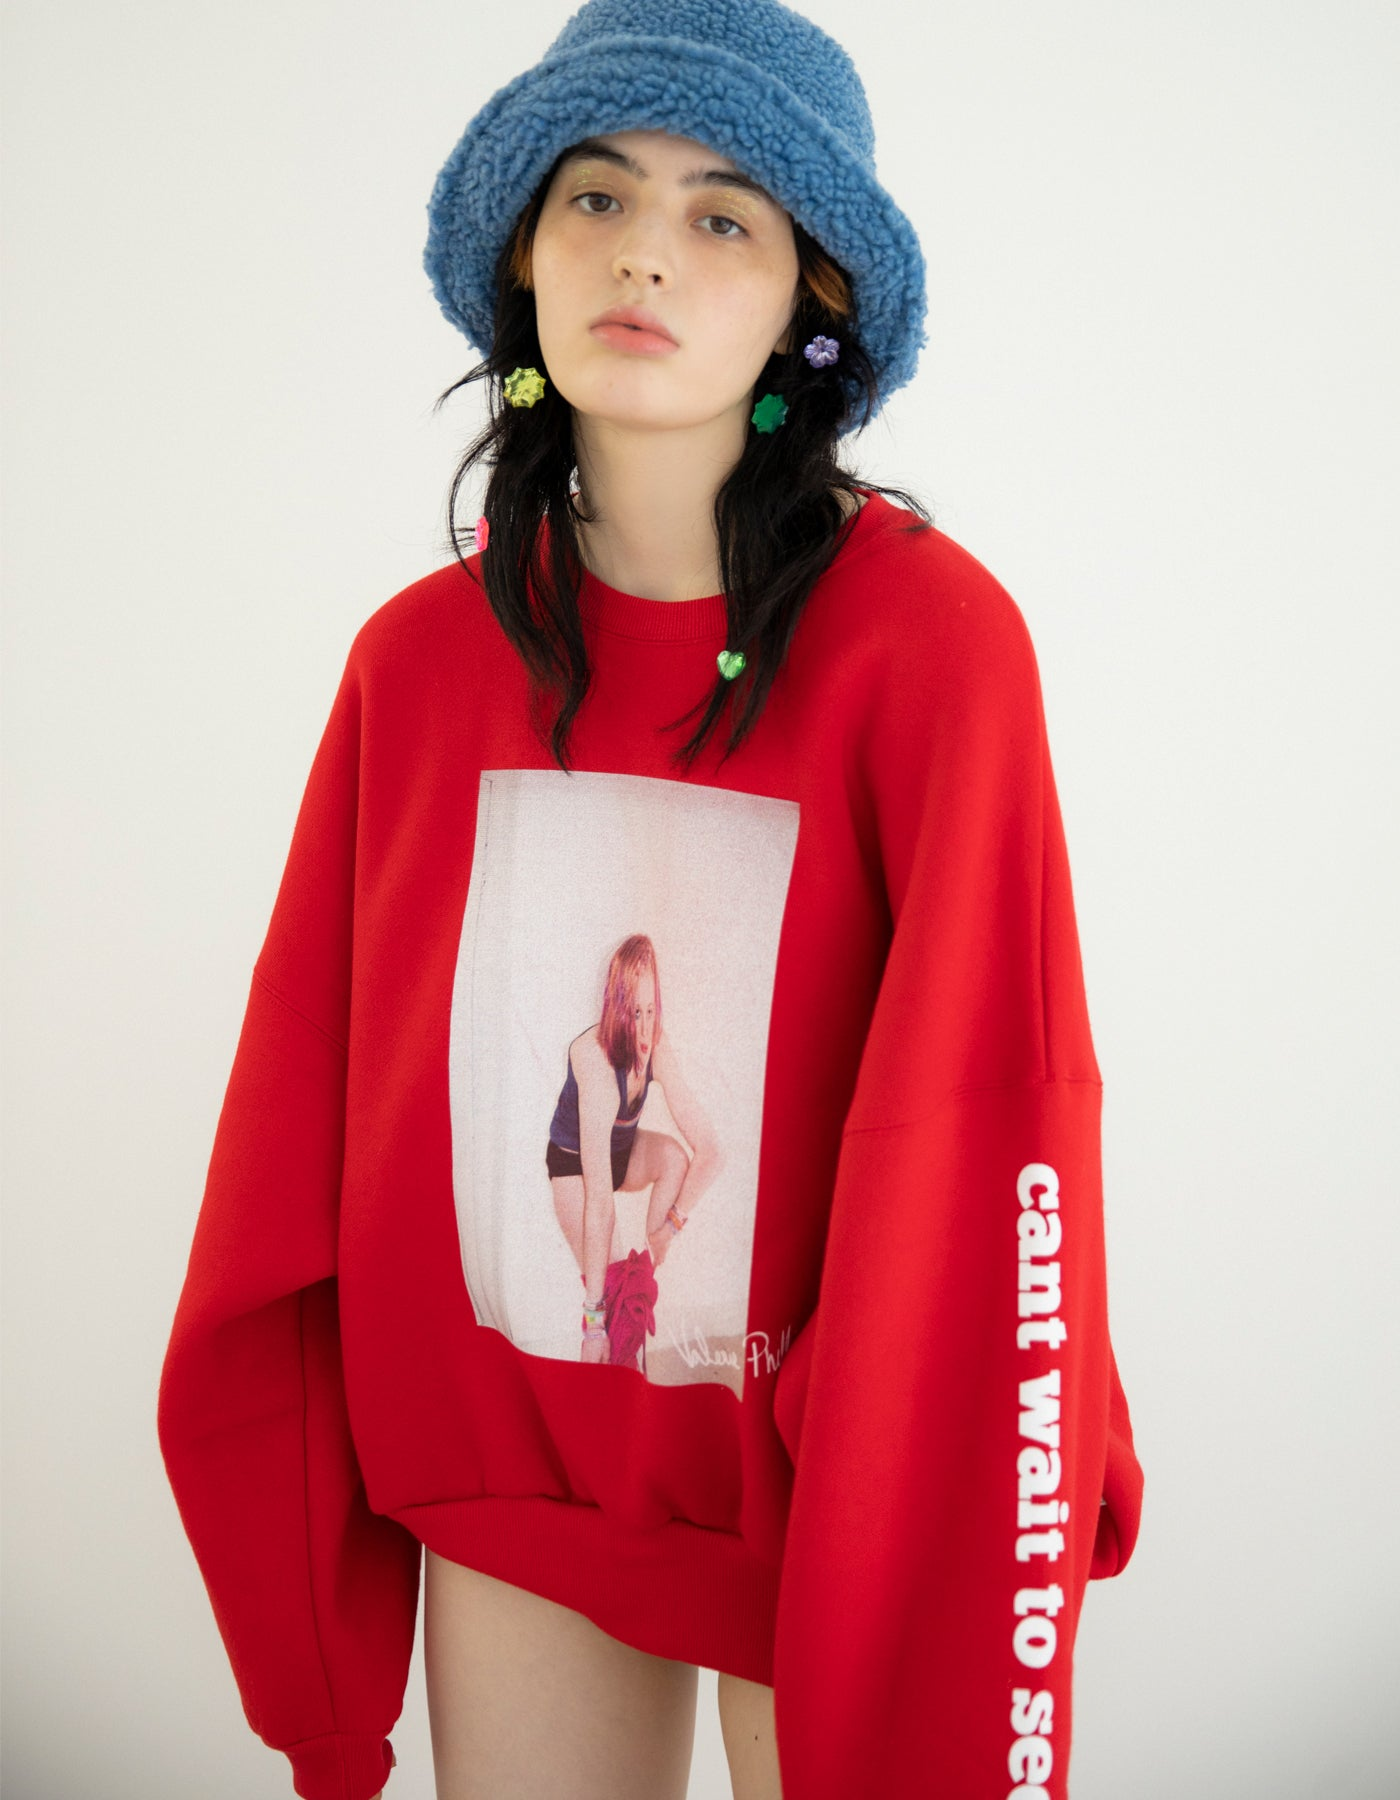 Valerie phillips × little sunny bite Photo print sweat top / RED